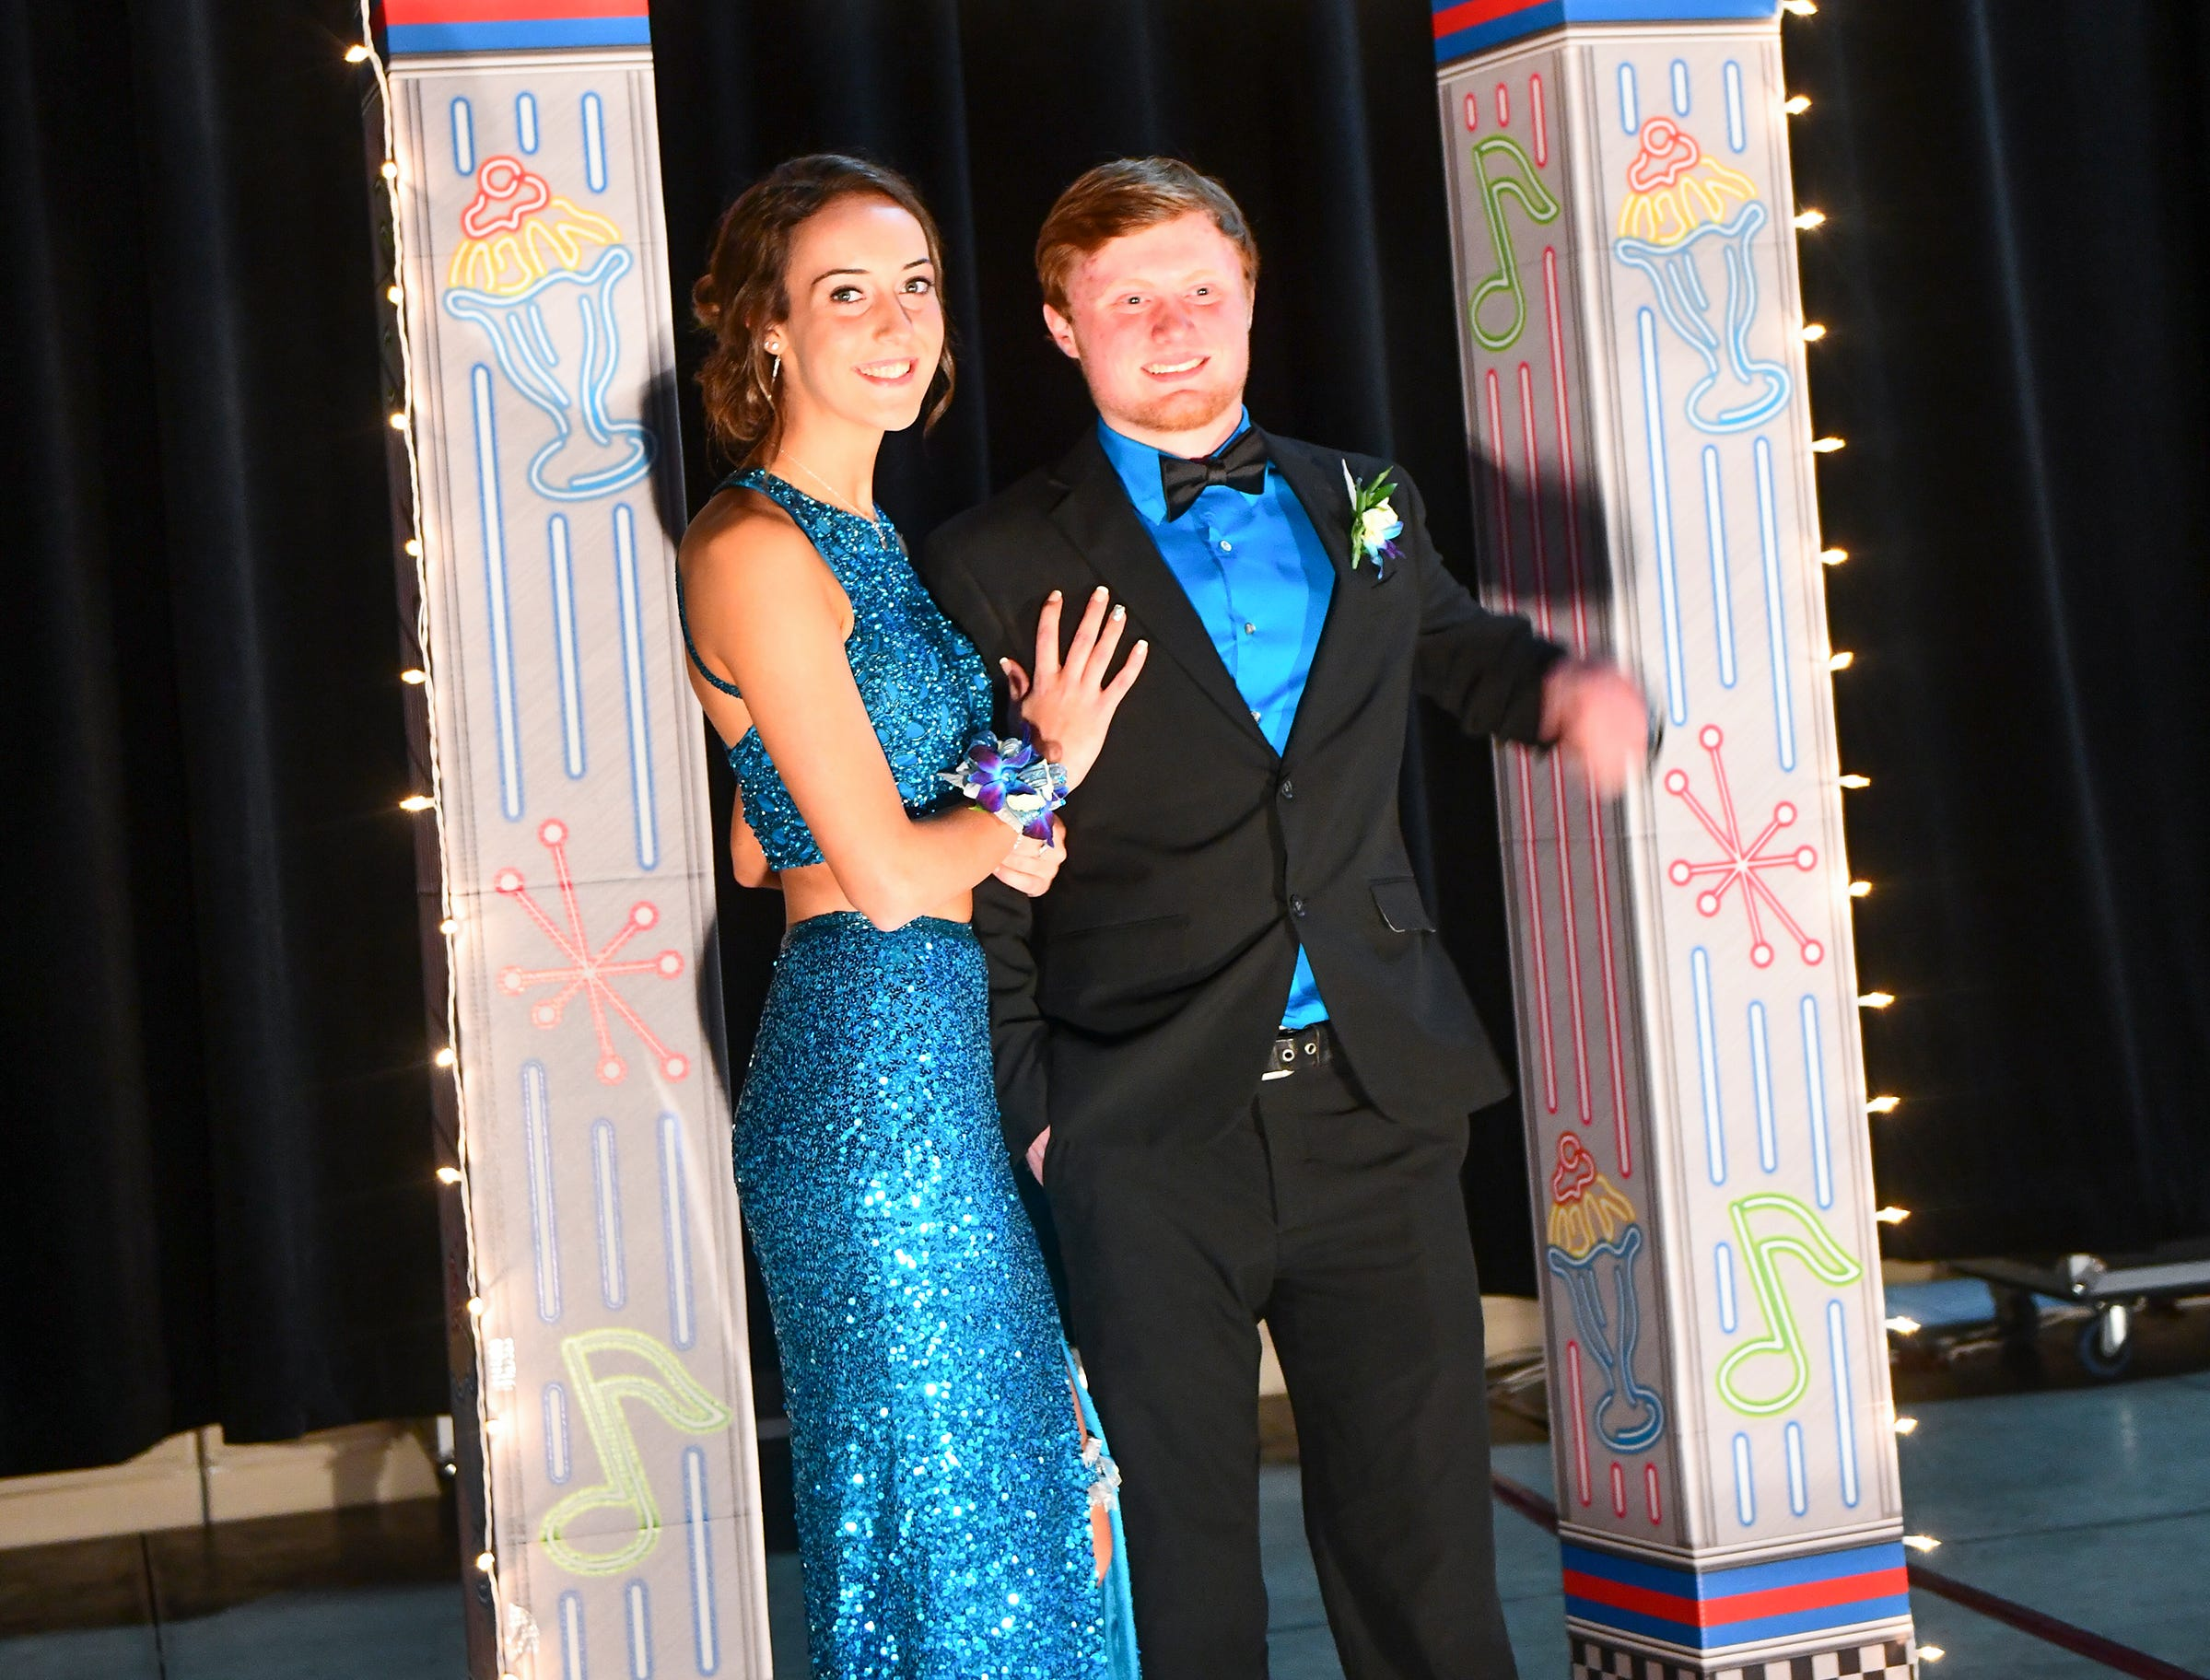 Promgoers strike a pose on stage during Sartell High School's prom grand march Saturday, May 4, at the River's Edge Convention Center in St. Cloud.